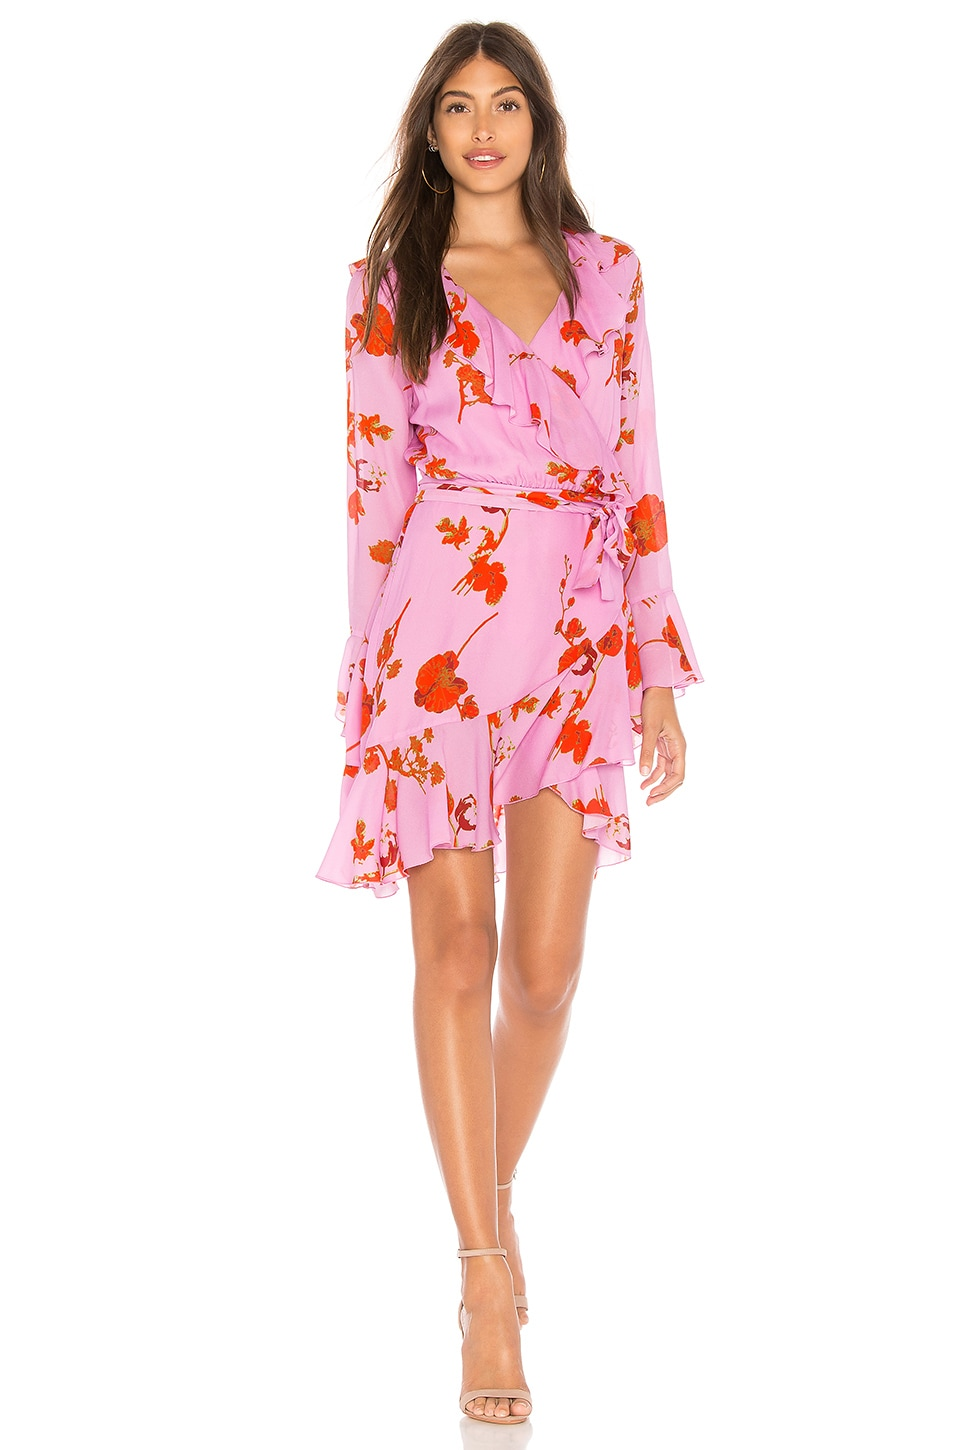 Cynthia Rowley Malibu Ruffle Mini Dress in Pink Poppy